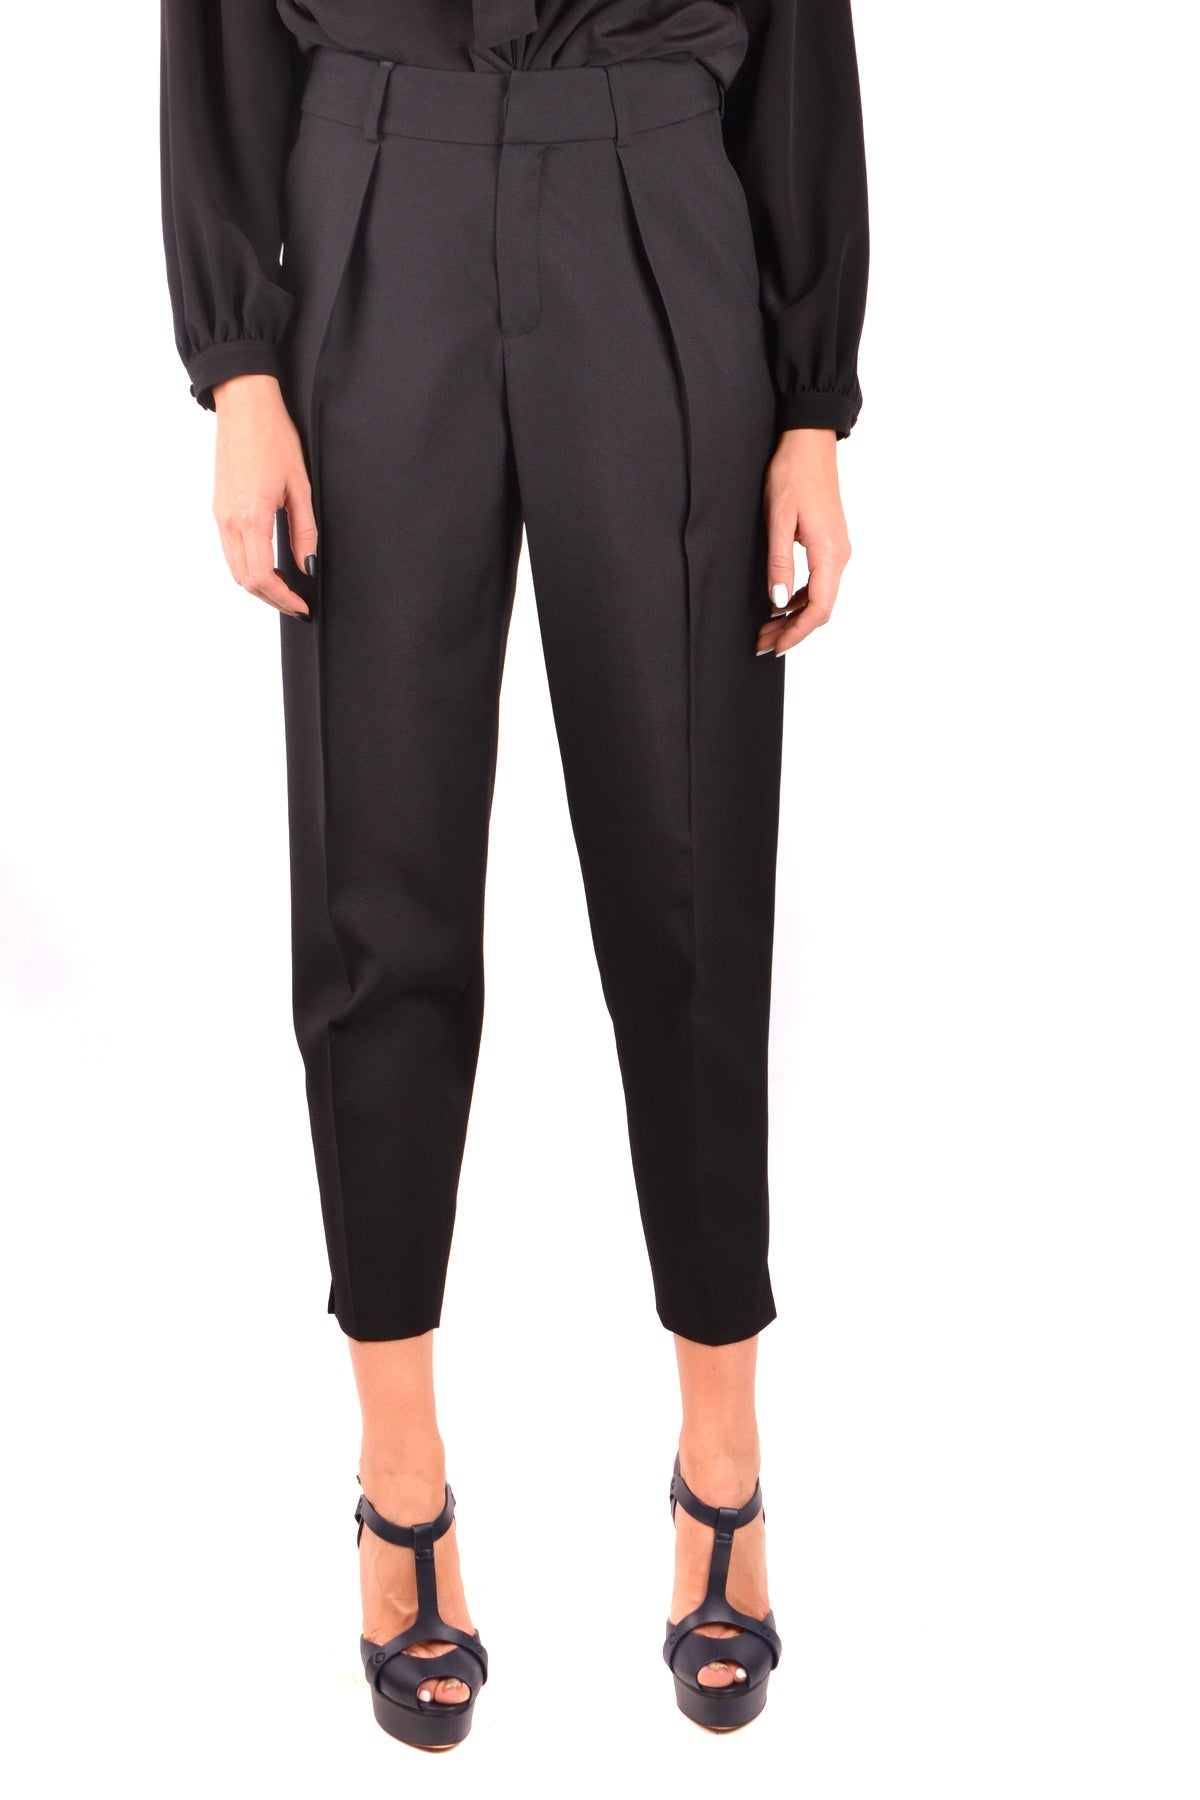 Trousers Saint Laurent-Trousers - WOMAN-36-Product Details Season: Fall / WinterTerms: New With LabelMain Color: BlackGender: WomanMade In: ItalyManufacturer Part Number: 504413 Y239WSize: FrYear: 2018Clothing Type: TrousersComposition: Wool 100%-Keyomi-Sook